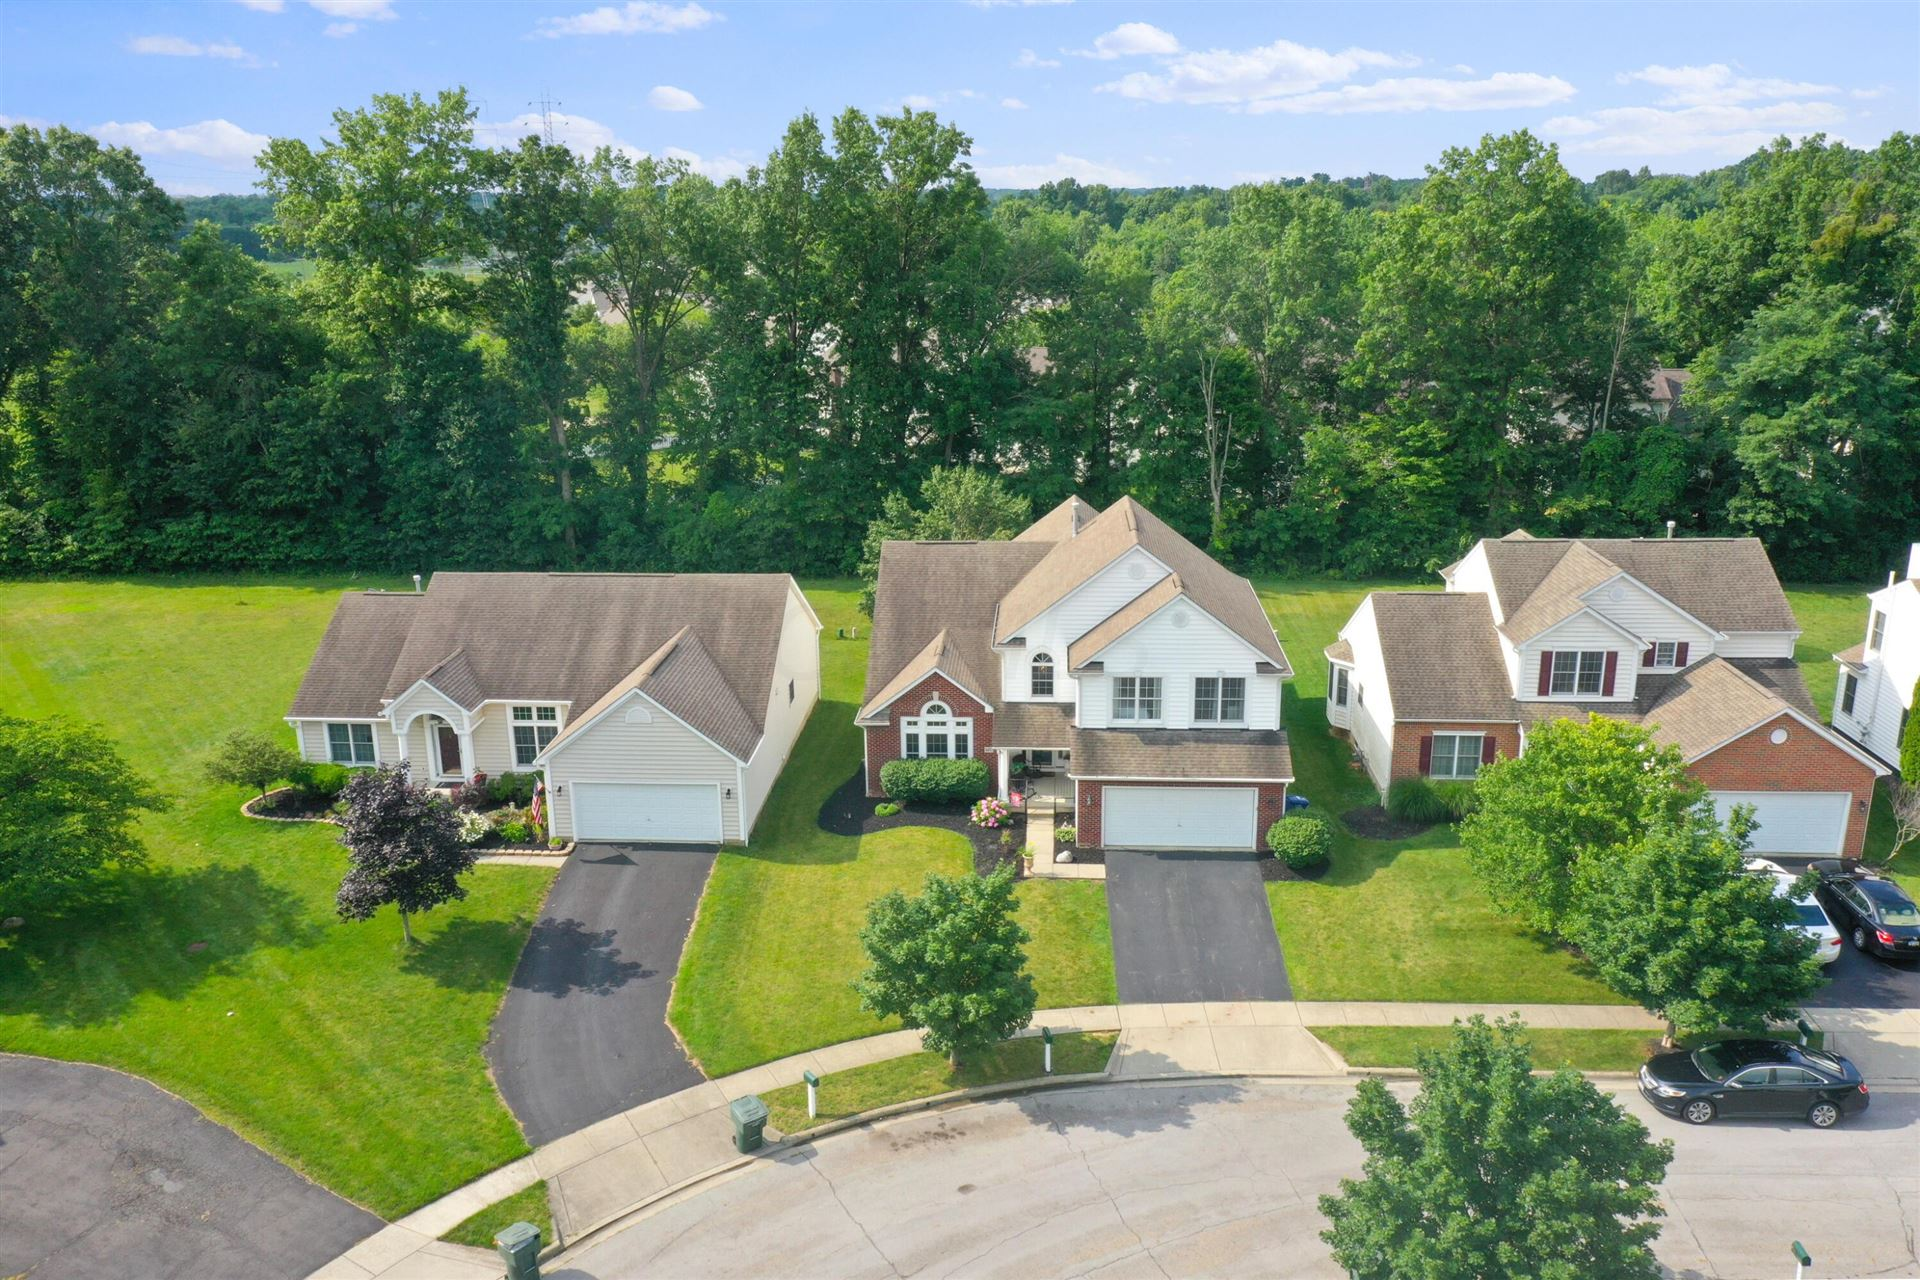 Photo of 4493 Flower Garden Drive, New Albany, OH 43054 (MLS # 221026326)